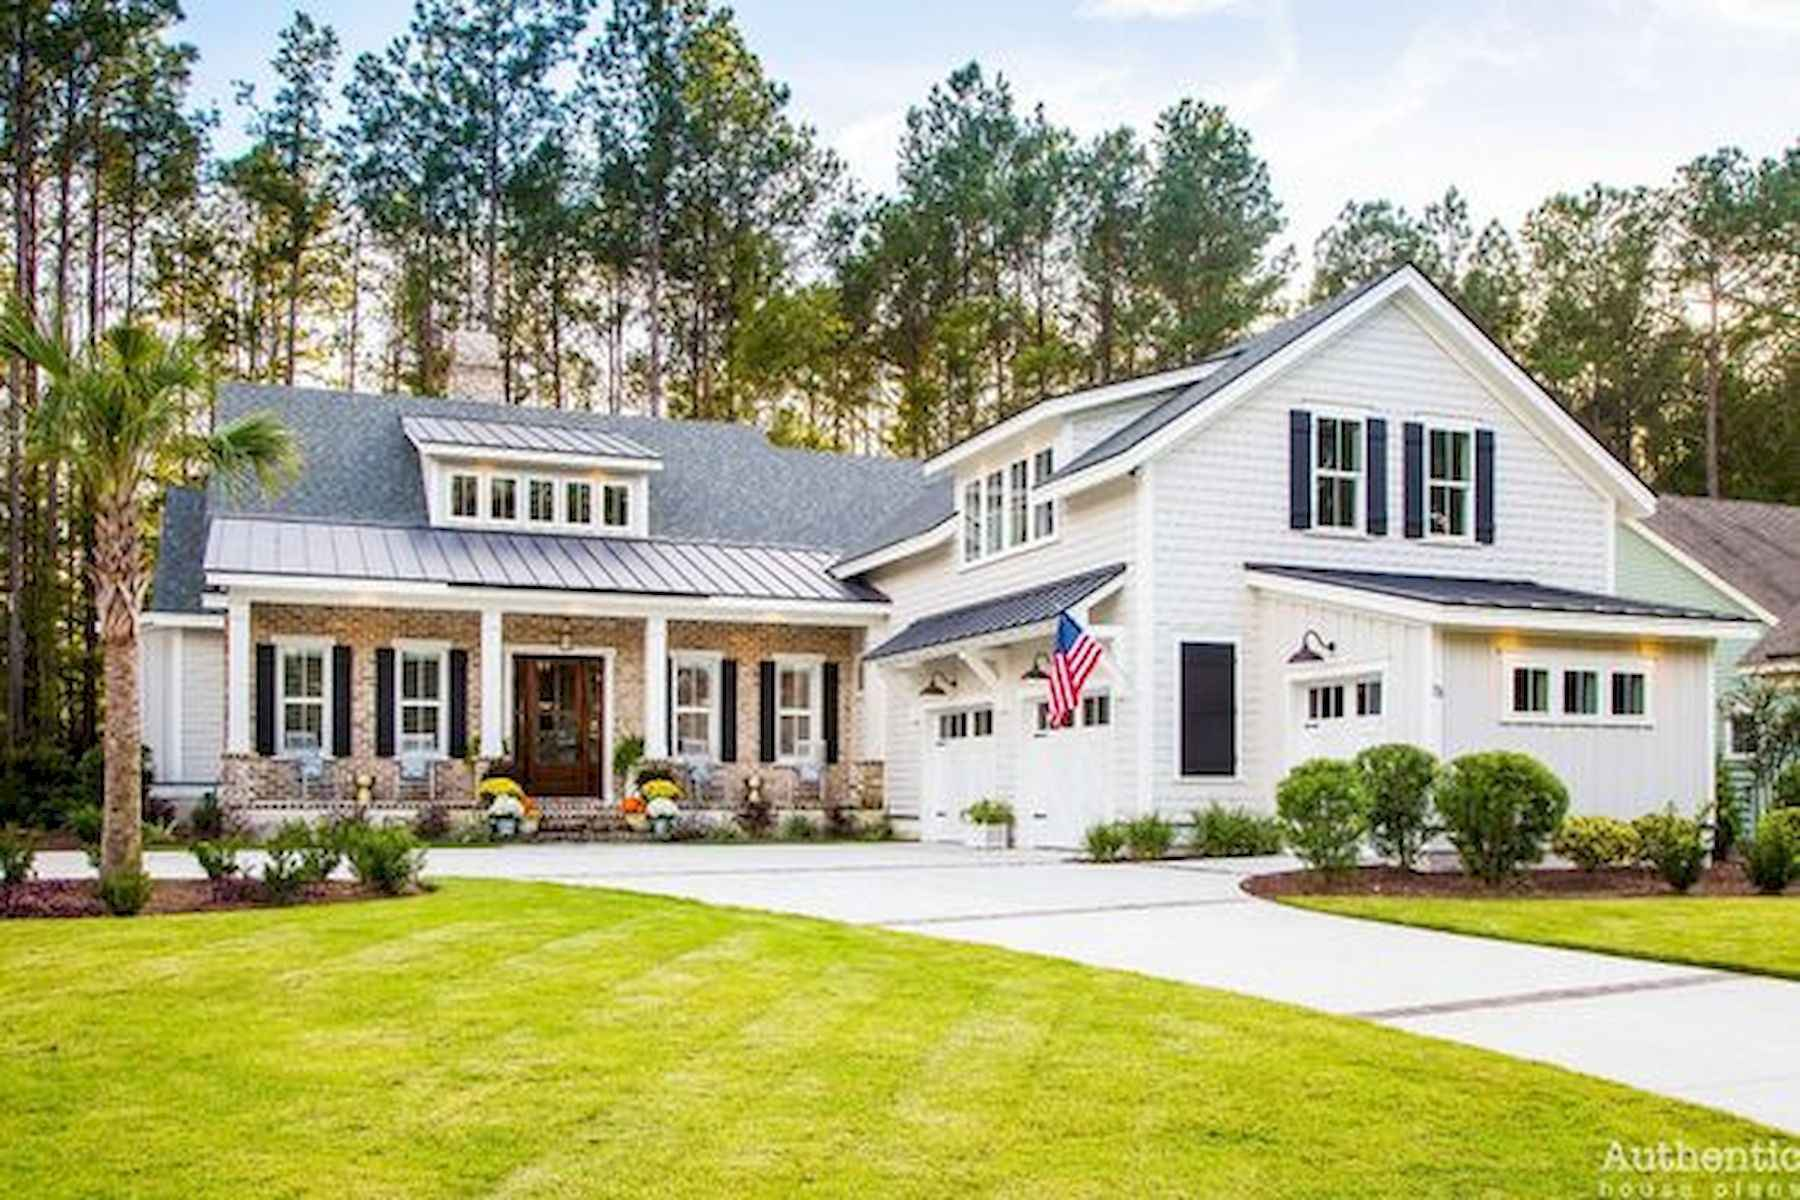 33 Best Modern Farmhouse Exterior Design Ideas - LivingMarch.com